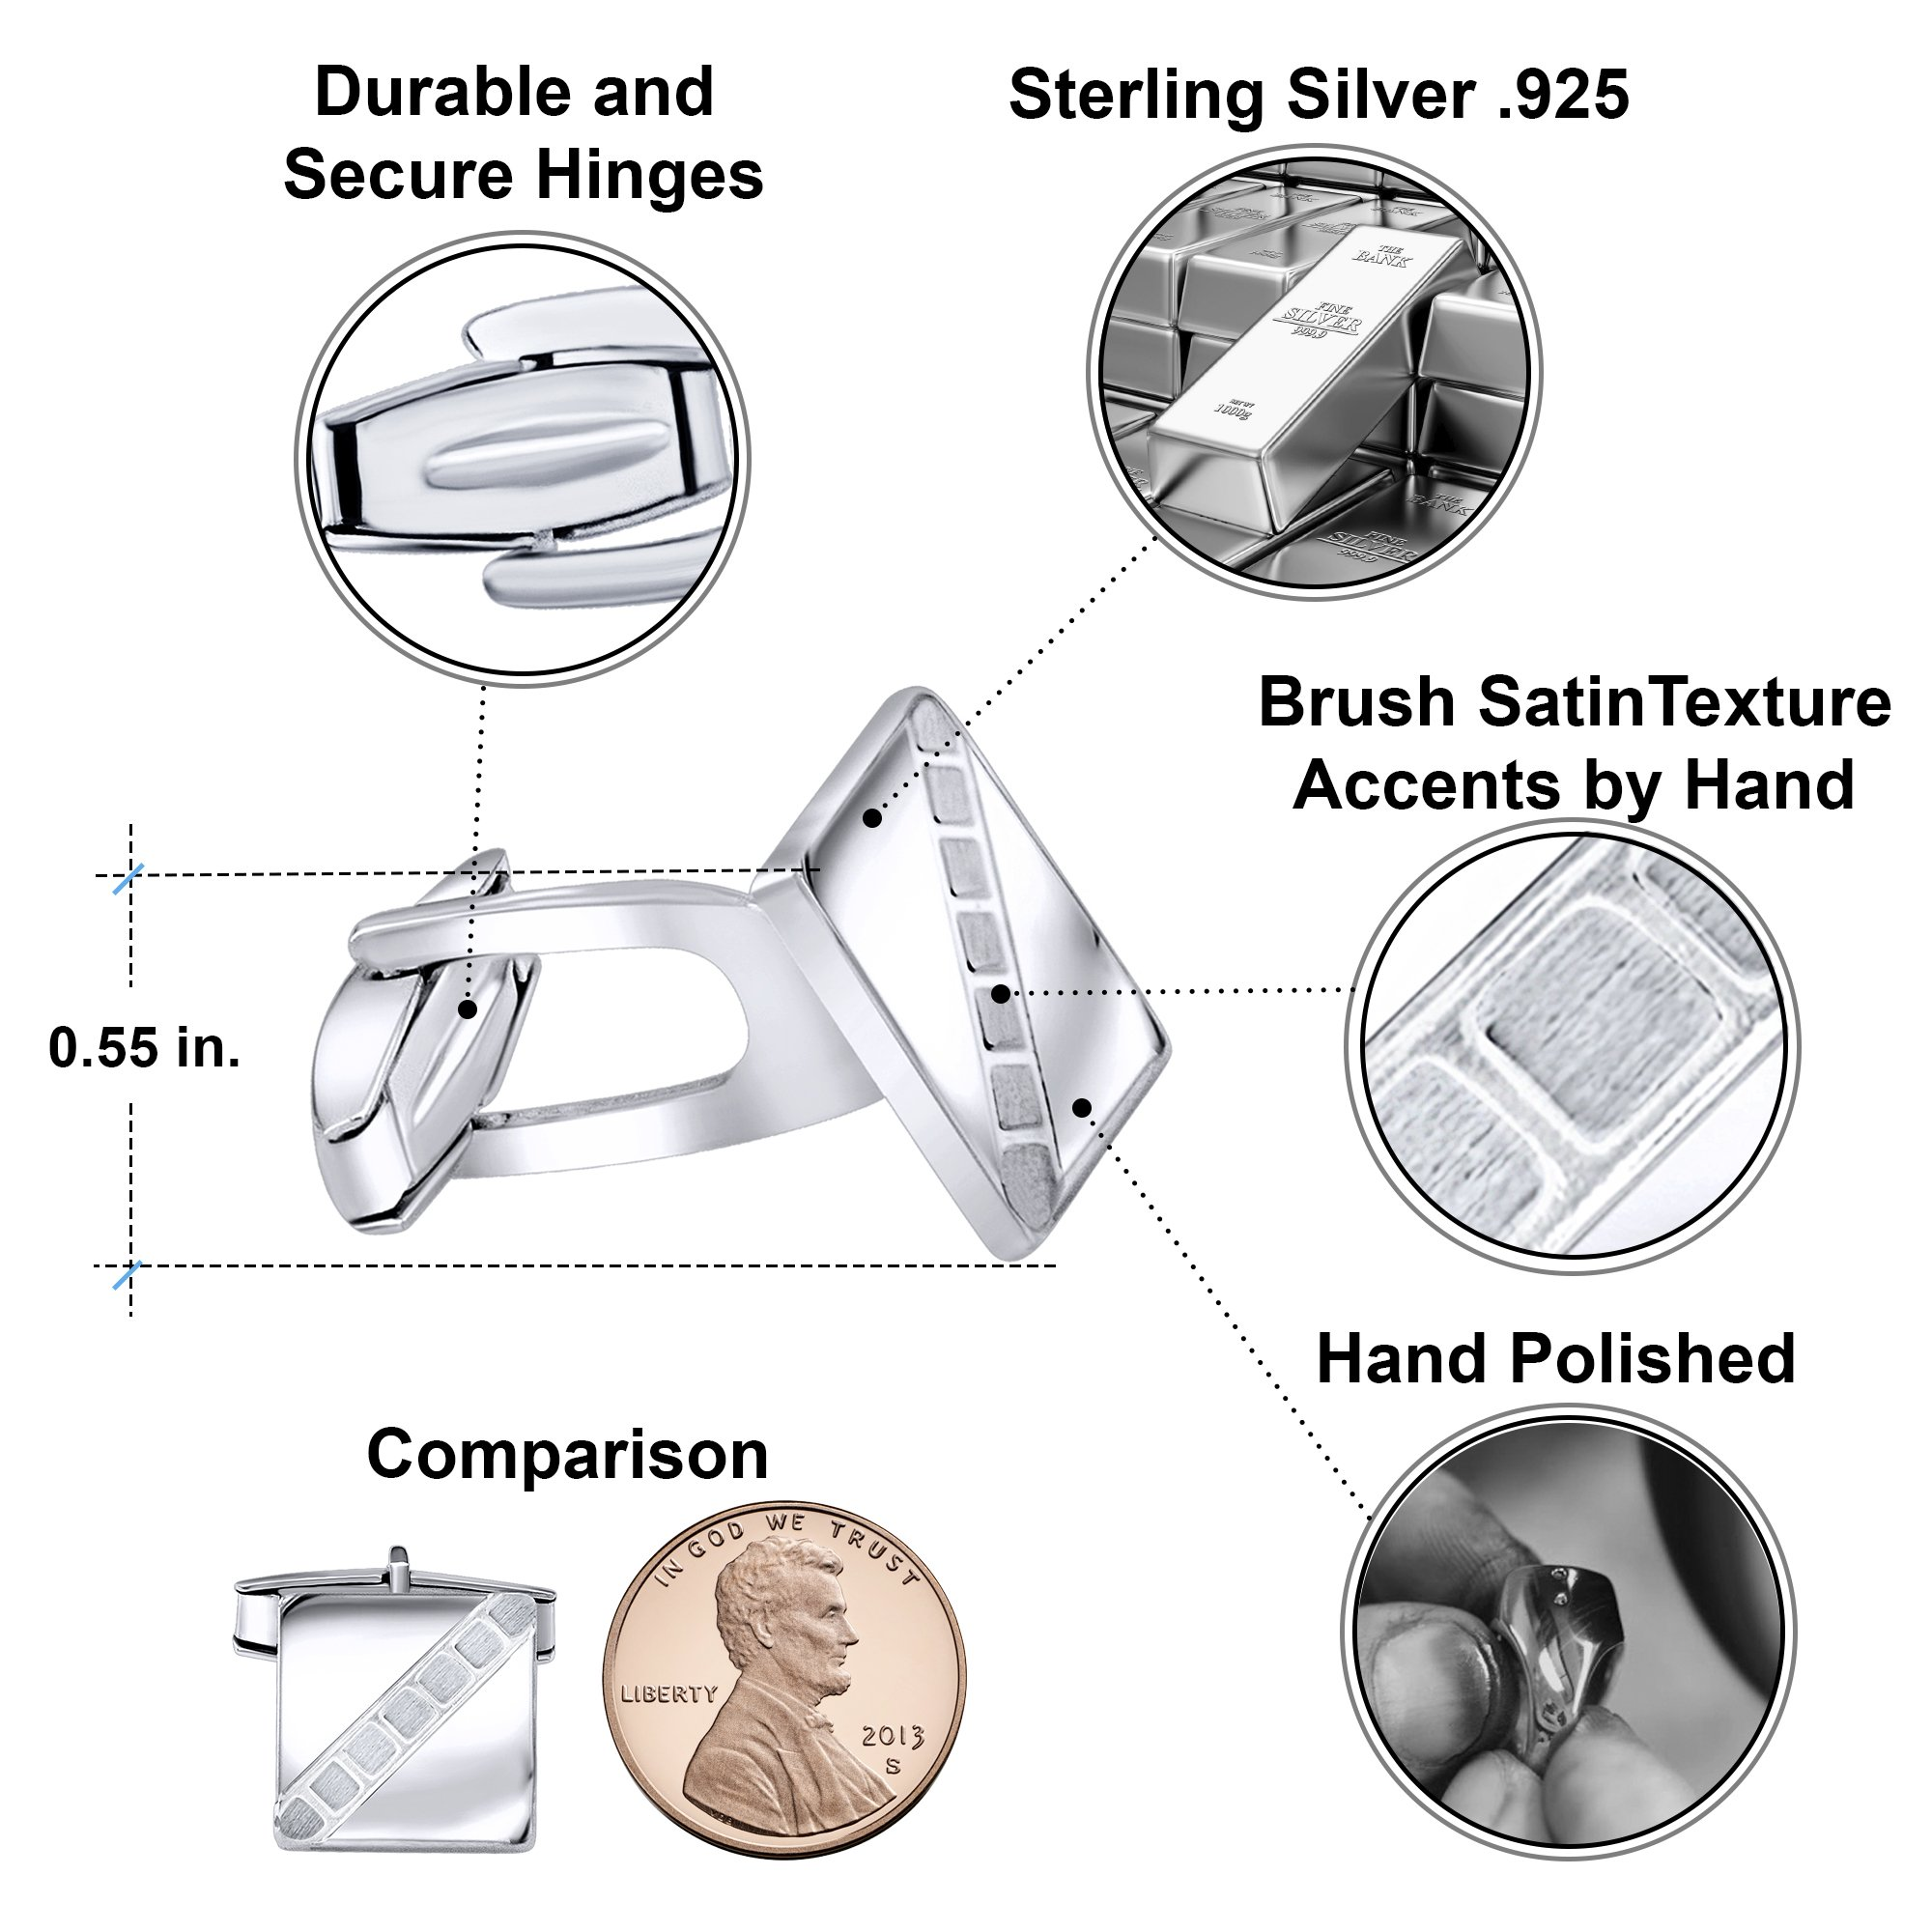 Sterling Manufacturers Men's Sterling Silver .925 Square Cufflinks with Satin Finish Check Accents, Engravable, 14mm. By by Sterling Manufacturers (Image #6)